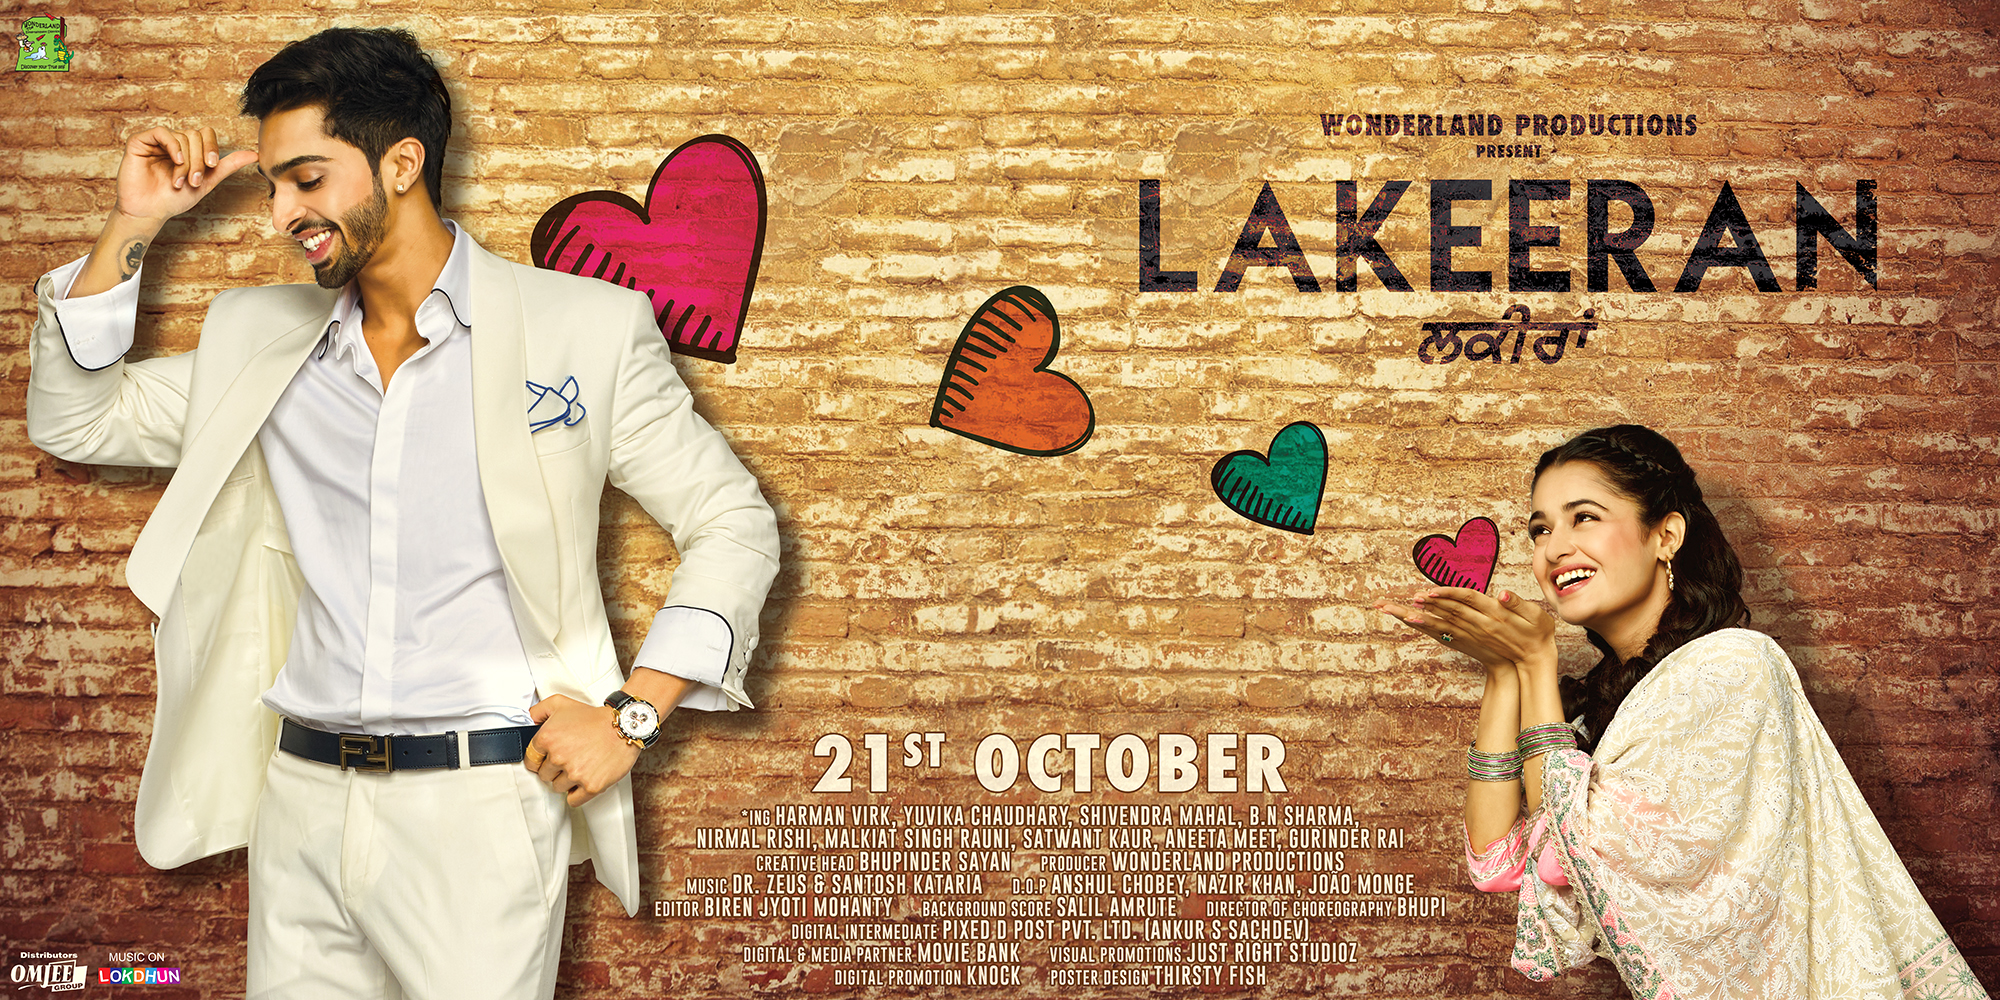 Punjabi Film 'Lakeeran' To Release Worldwide & in UK